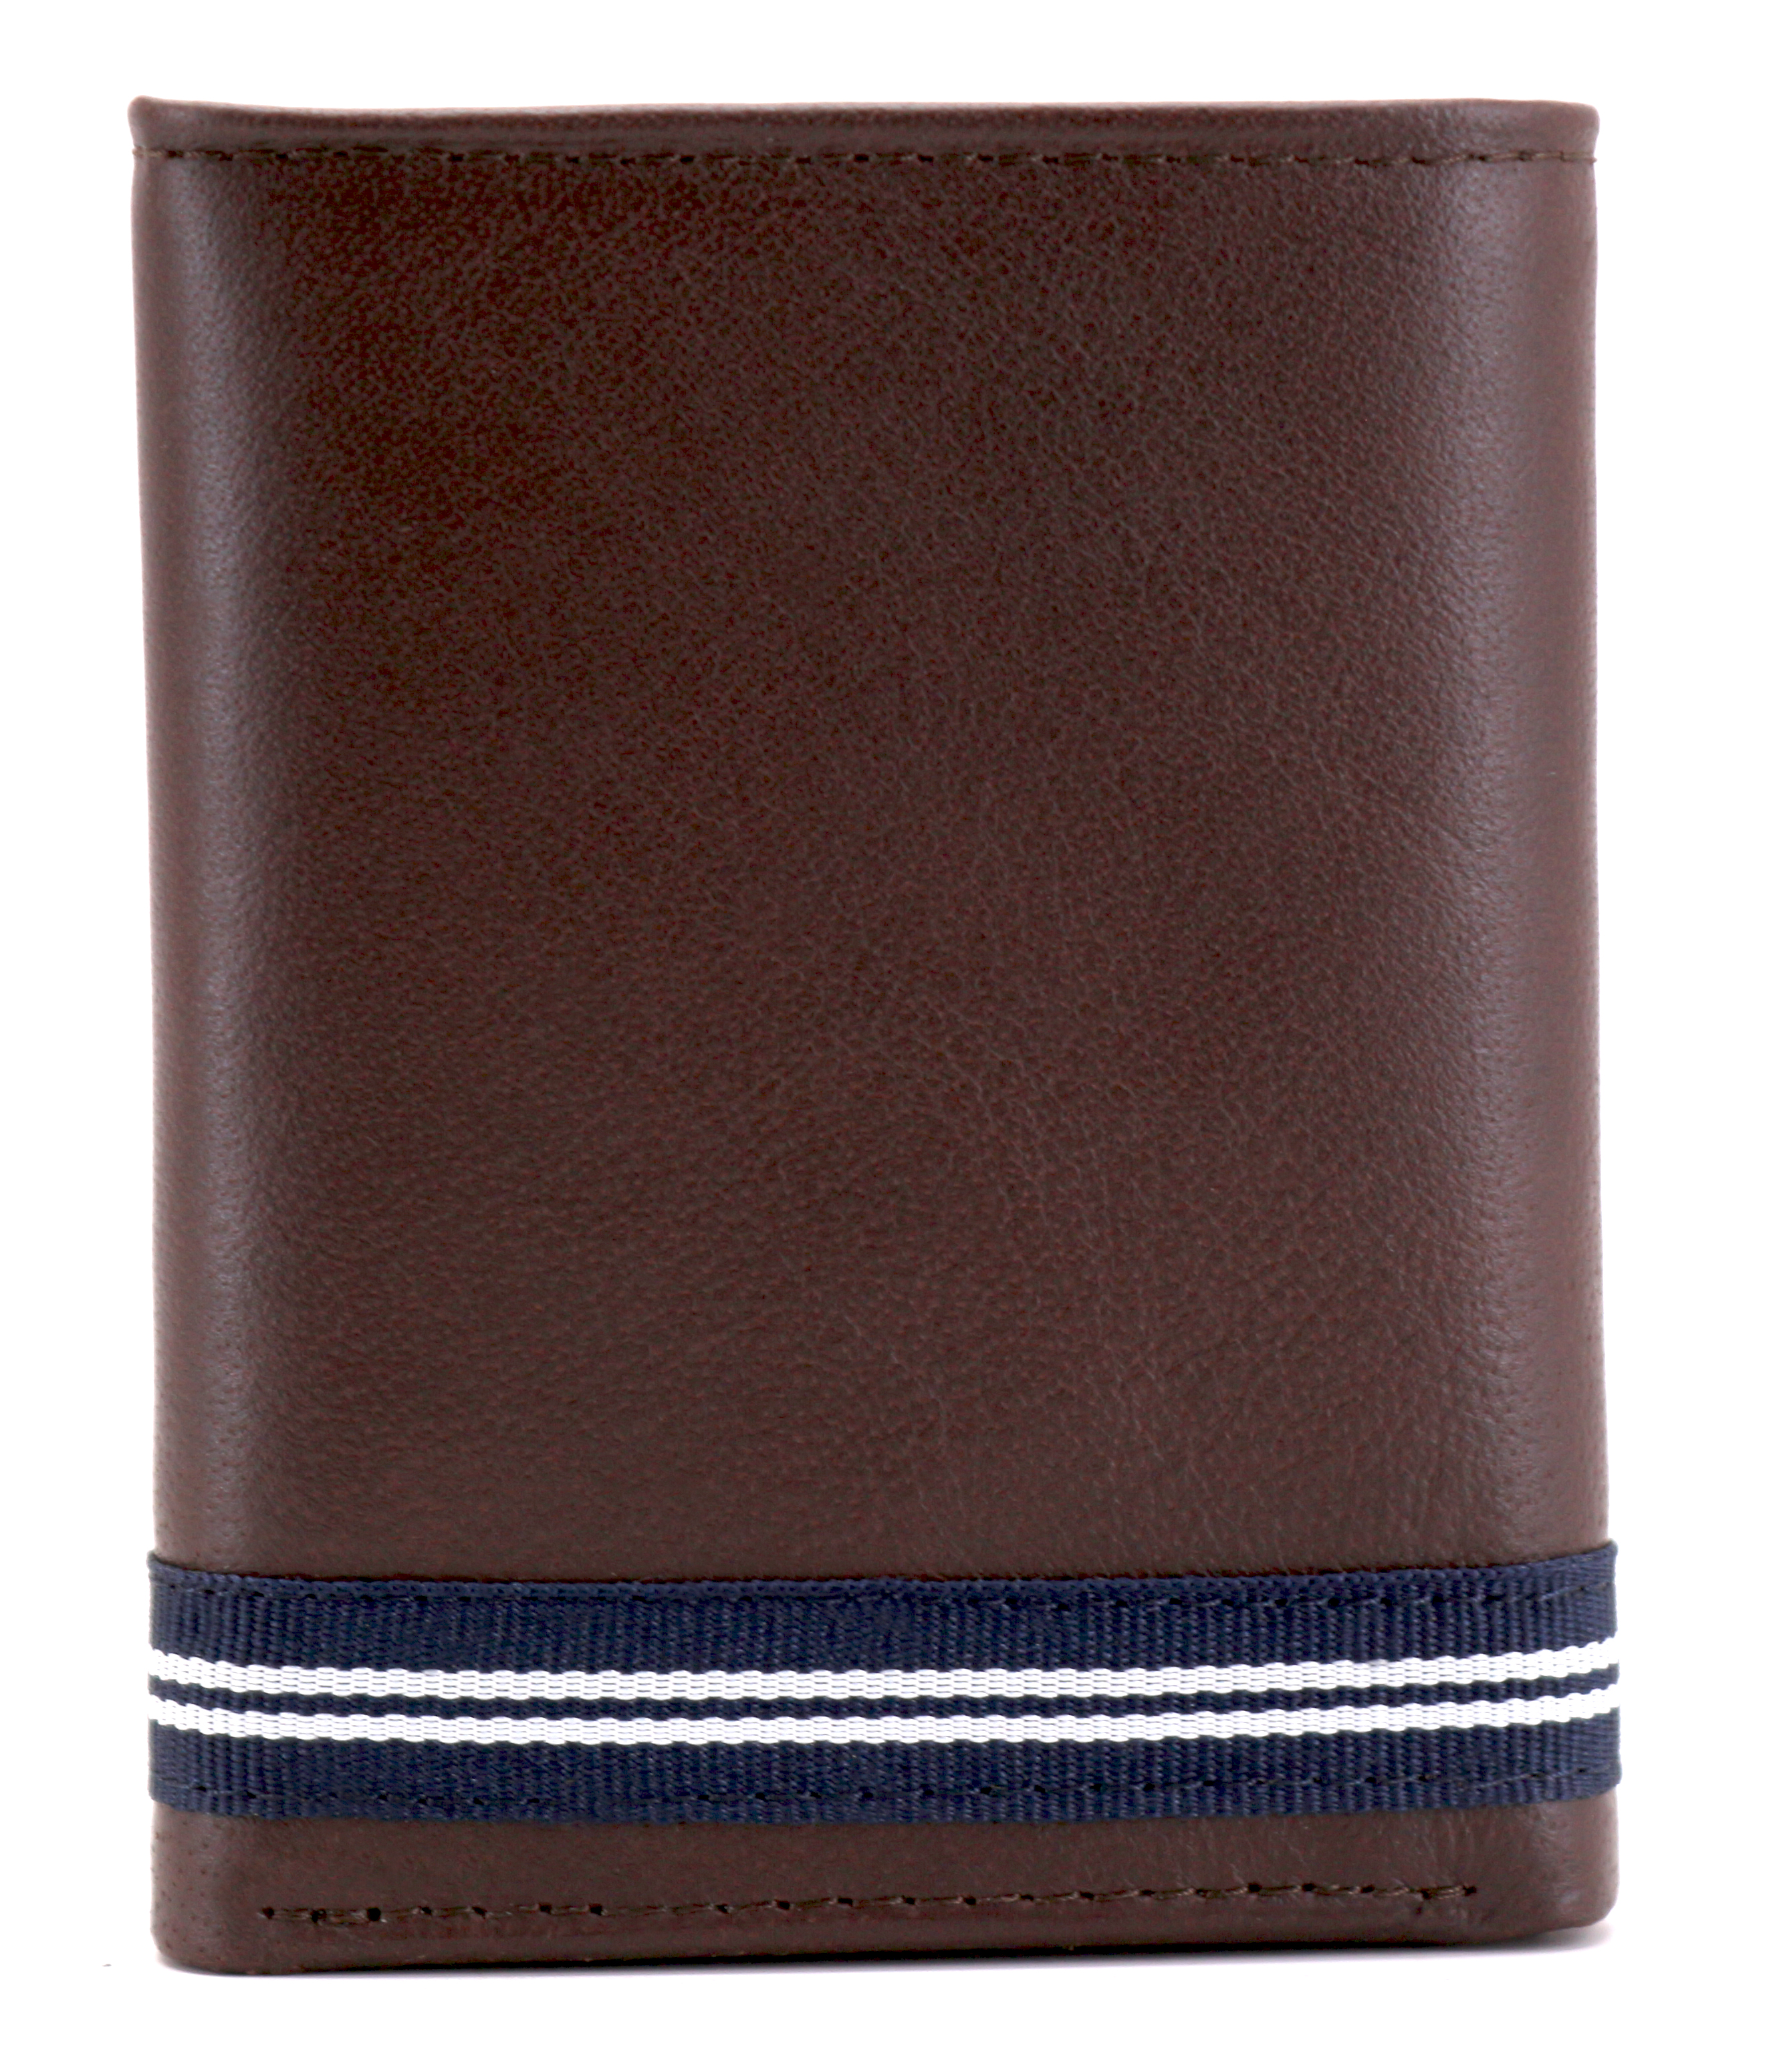 Nautica-Men-039-s-Genuine-Leather-Credit-Card-Id-Holder-Trifold-Wallet thumbnail 15